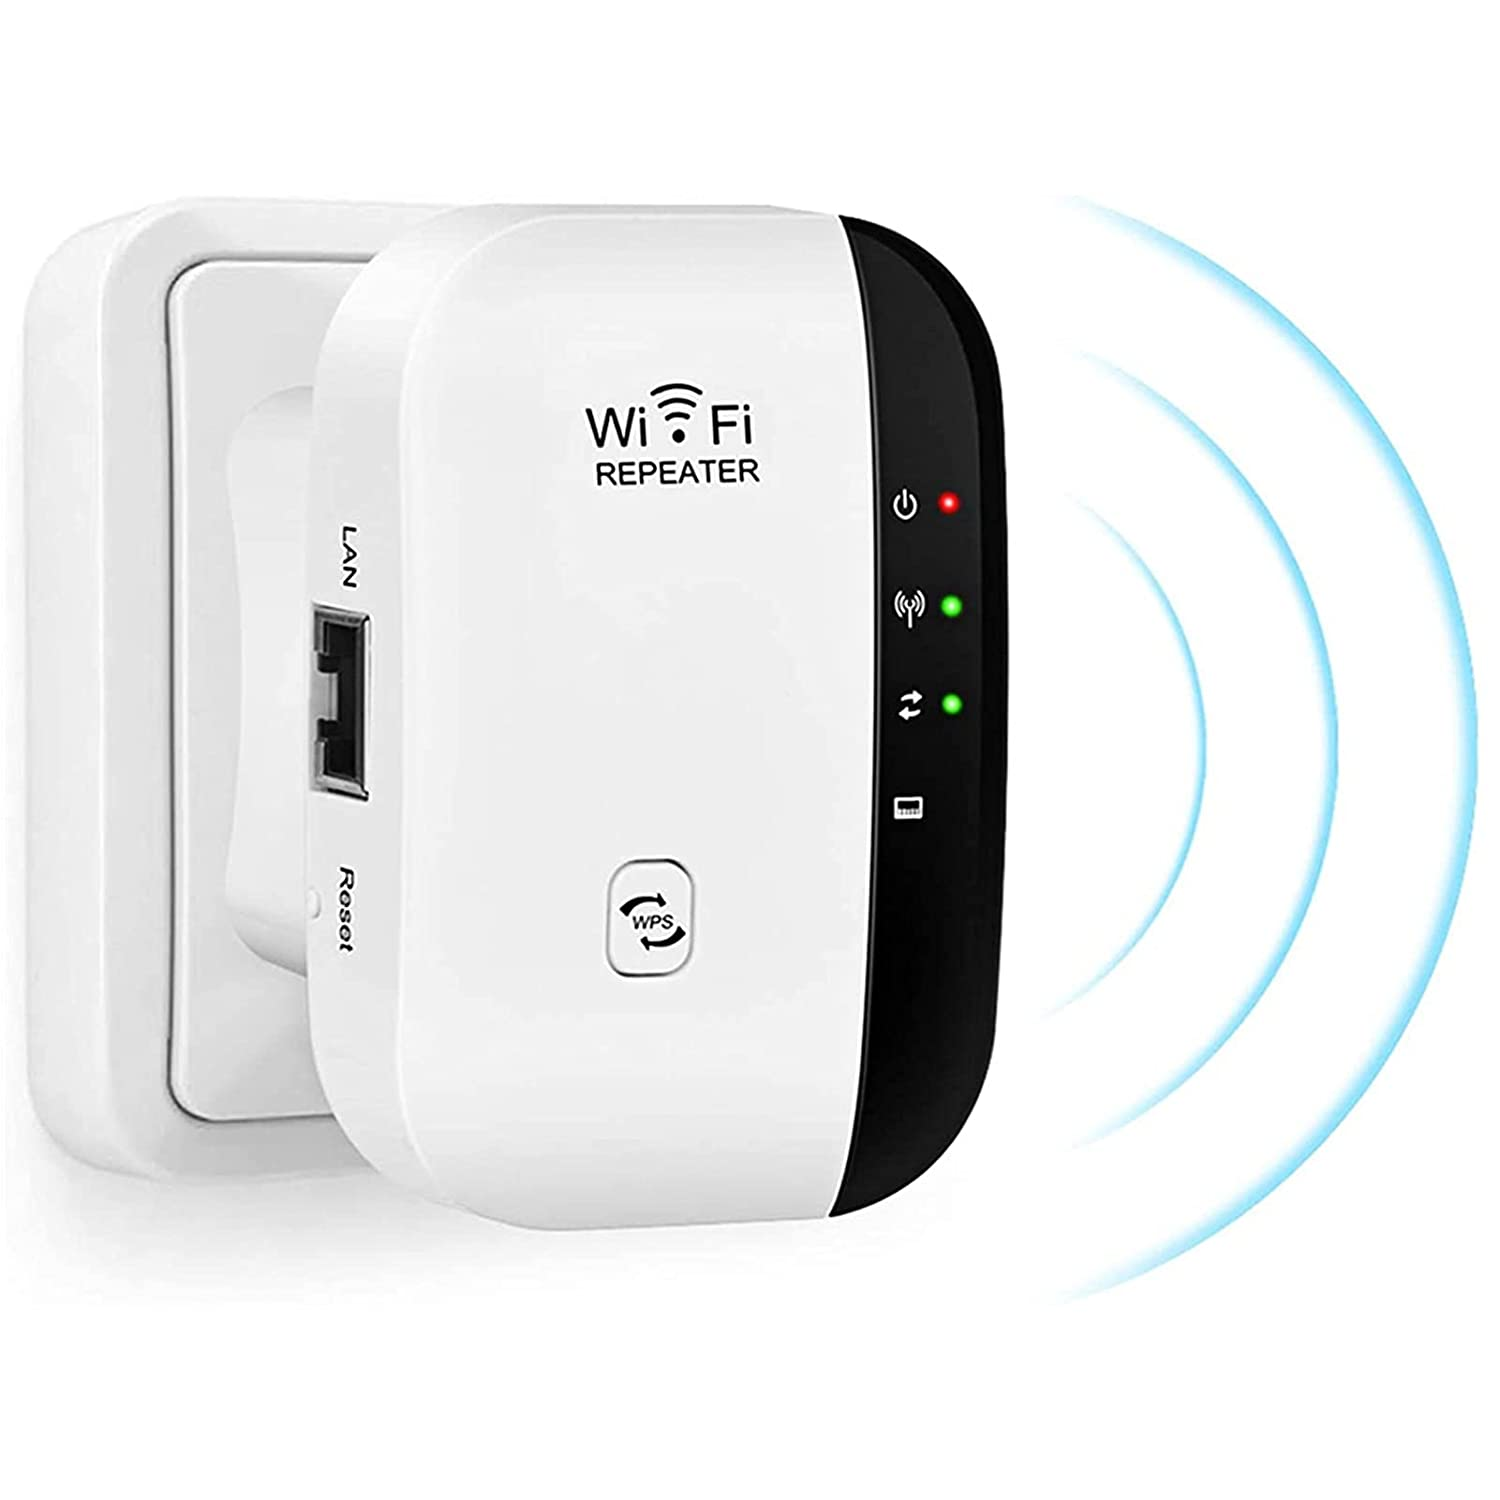 what wifi extender works best with at&t